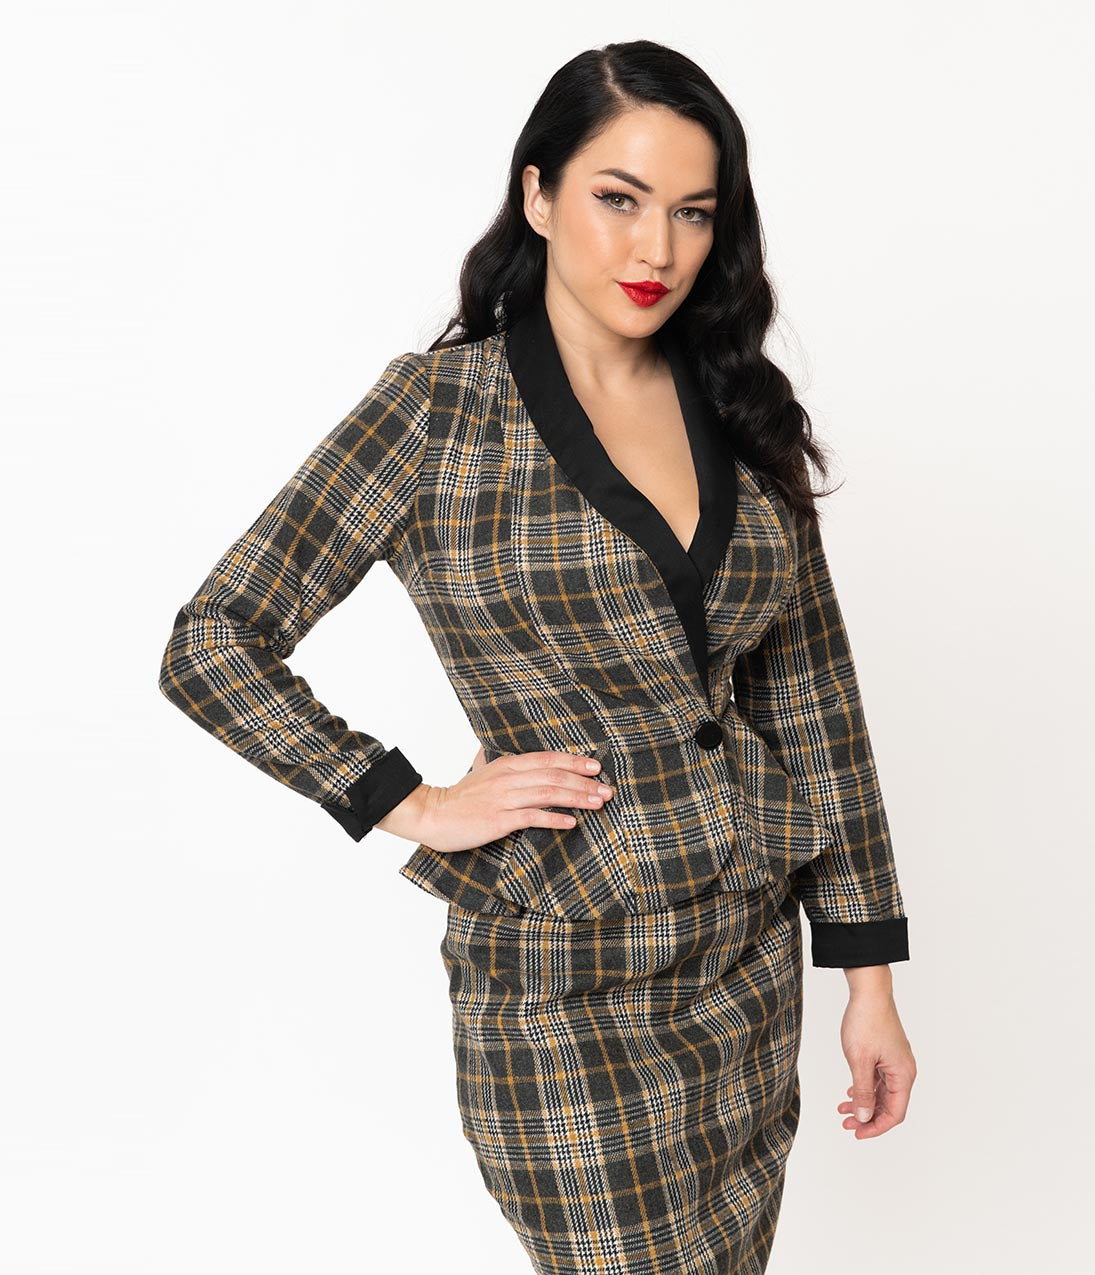 1940s Style Coats and Jackets for Sale 1940S Grey  Mustard Plaid Woven Peplum Millie Jacket $82.00 AT vintagedancer.com